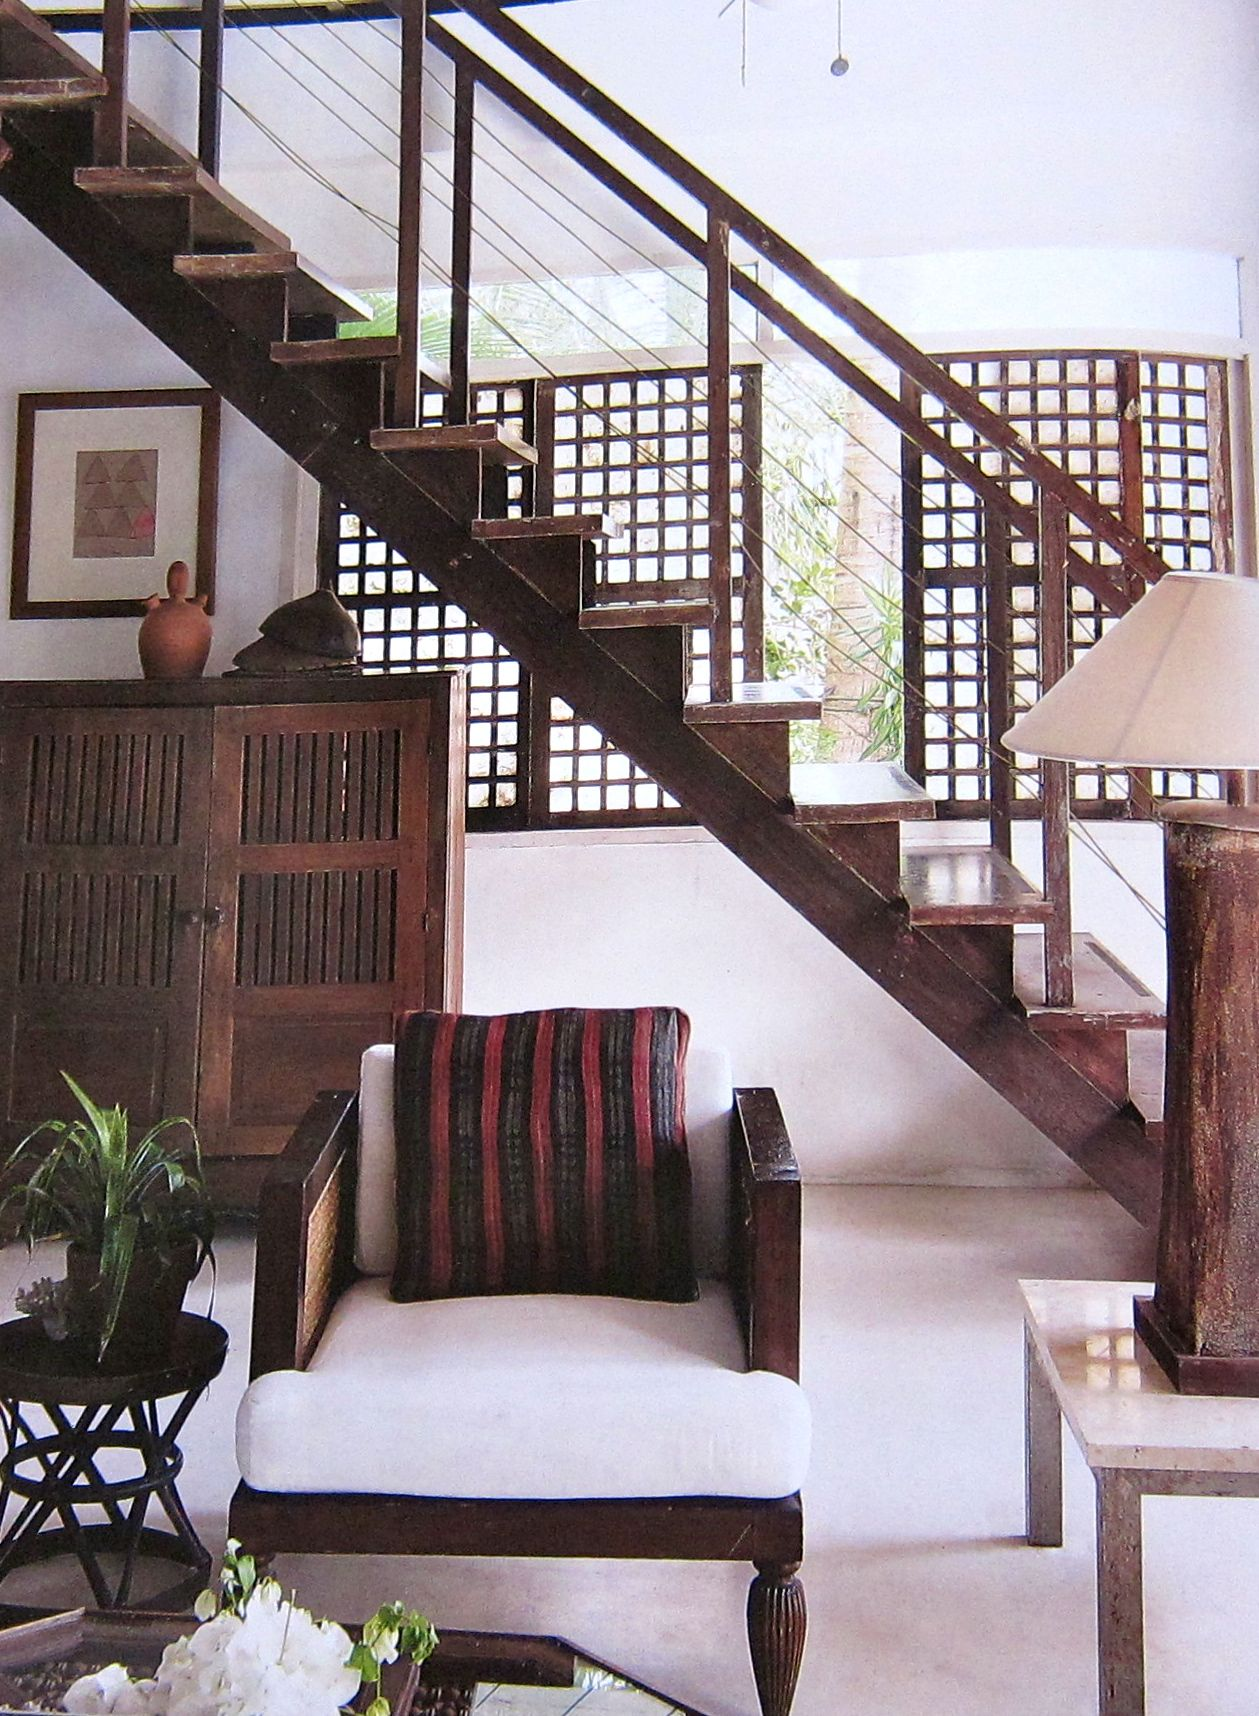 Philippine traditional house philippines interior design pilipinas pinas pinoy asian asia home bahay